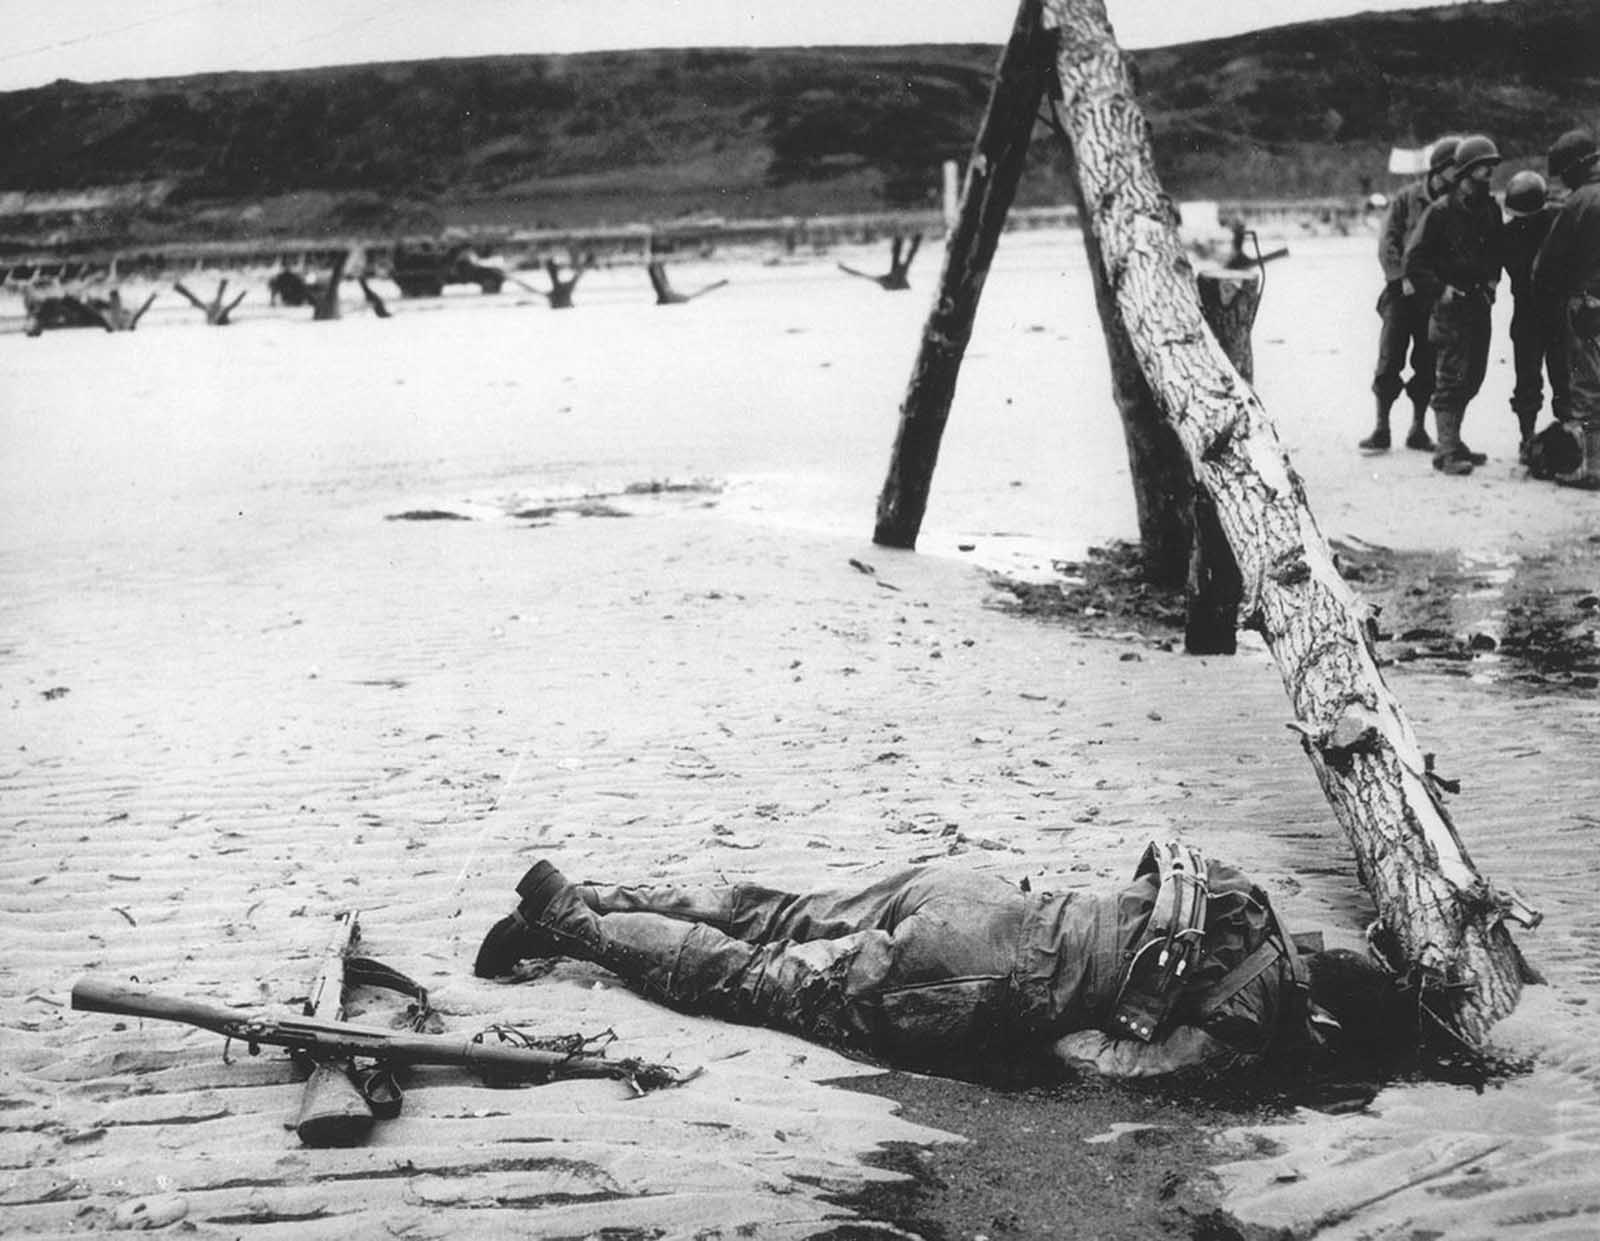 An American soldier, who died in combat during the Allied invasion, lies on the beach of the Normandy coast, in the early days of June 1944. Two crossed rifles in the sand next to his body are a comrade's last reverence. The wooden structure on the right, normally veiled by high tide water, was an obstruction erected by the Germans to prevent seaborne landings.